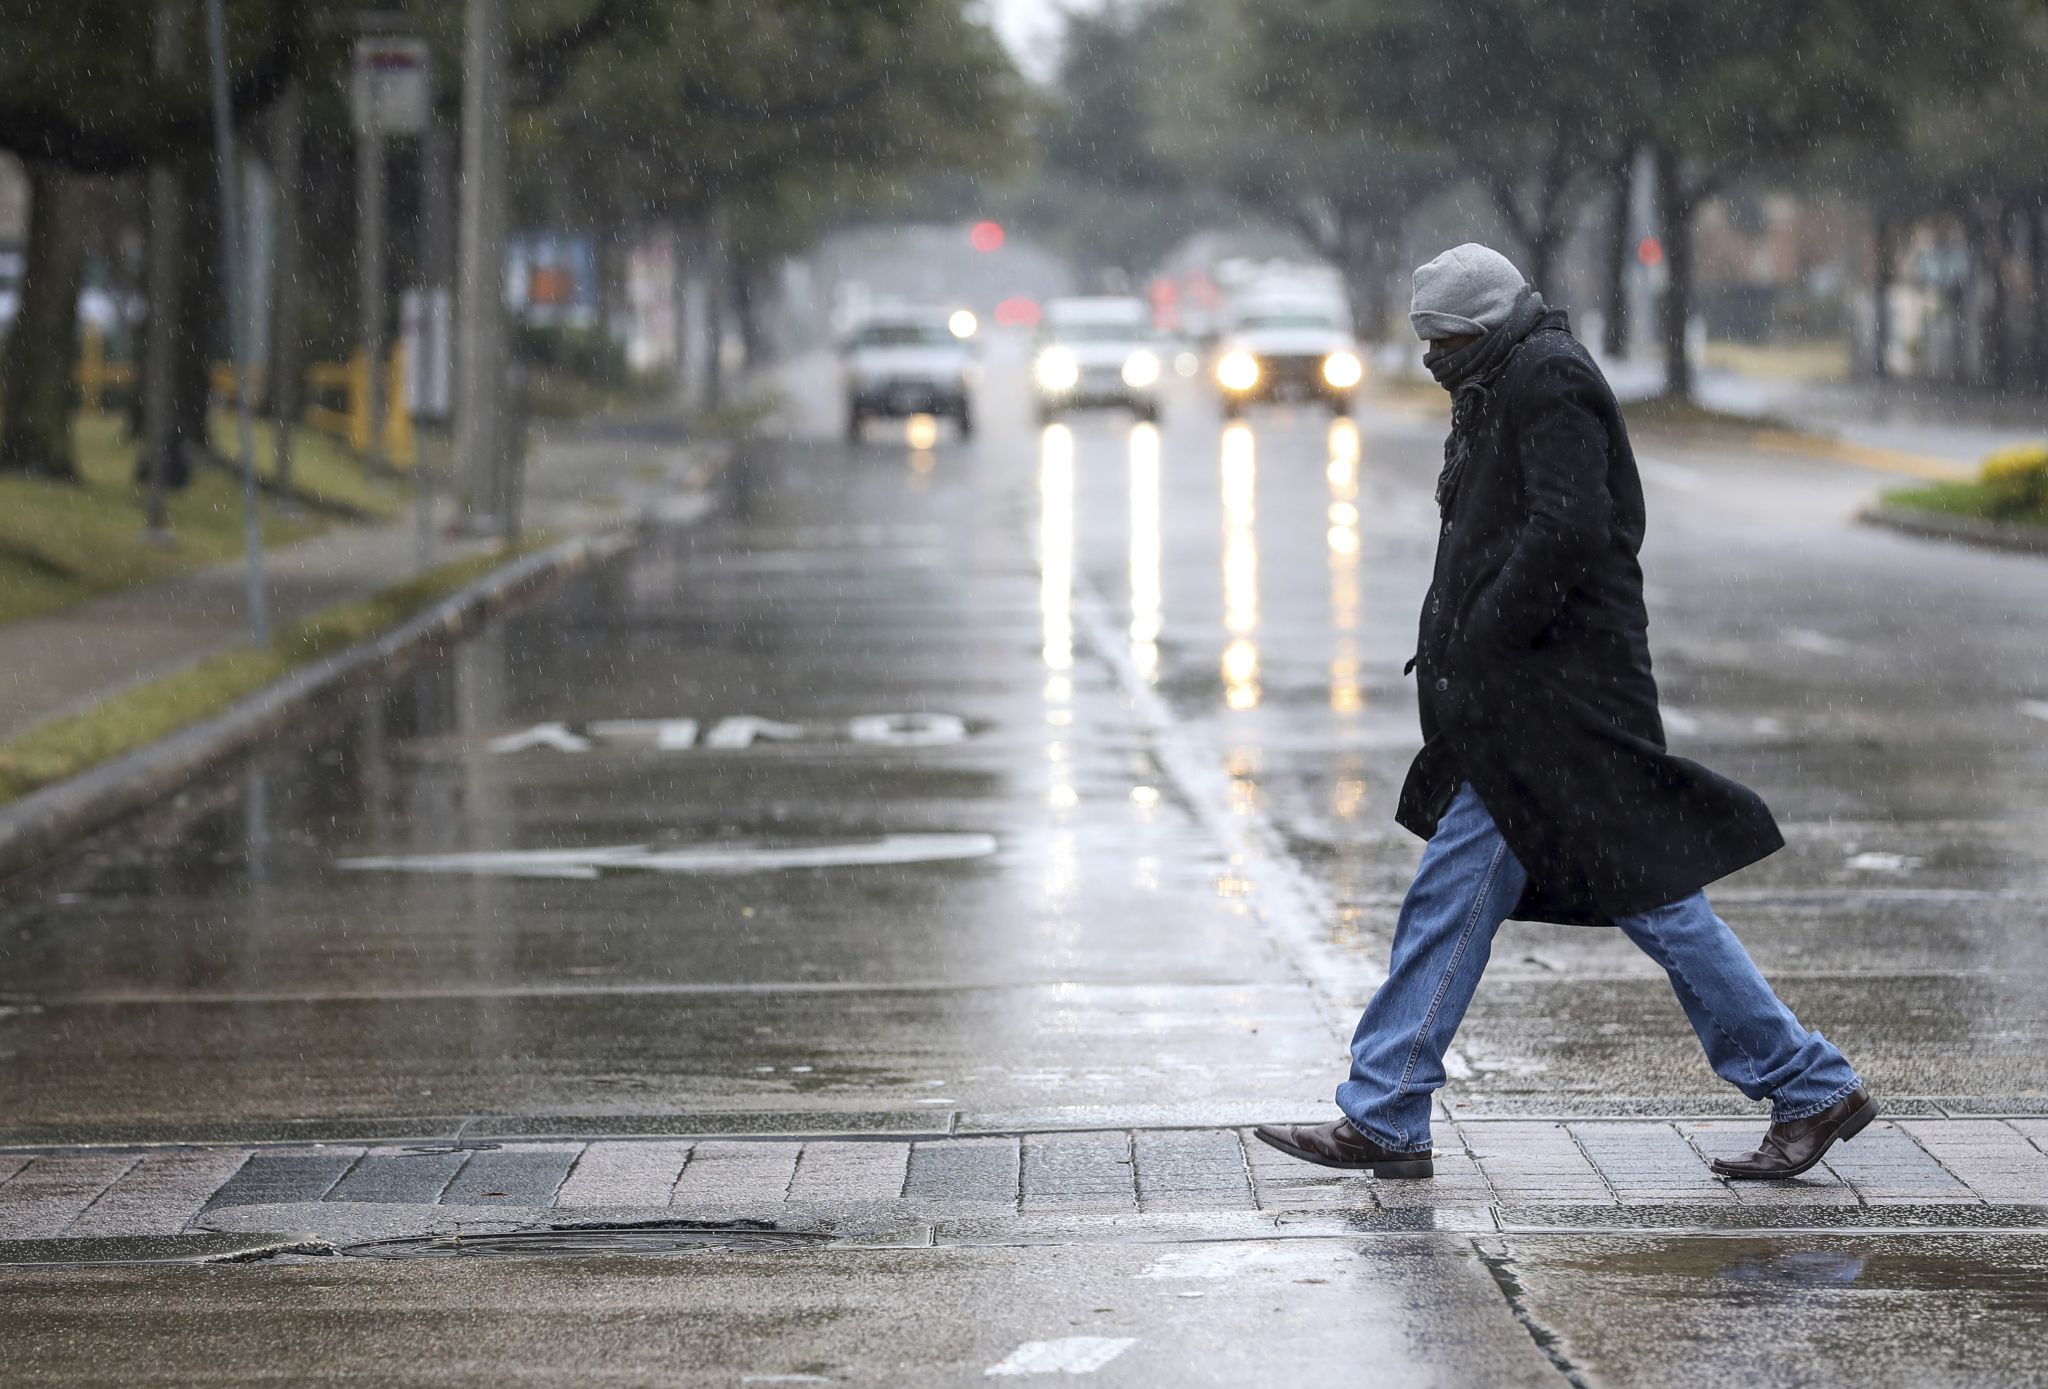 Season for aches and pains as cooler weather rolls in - Houston Chronicle